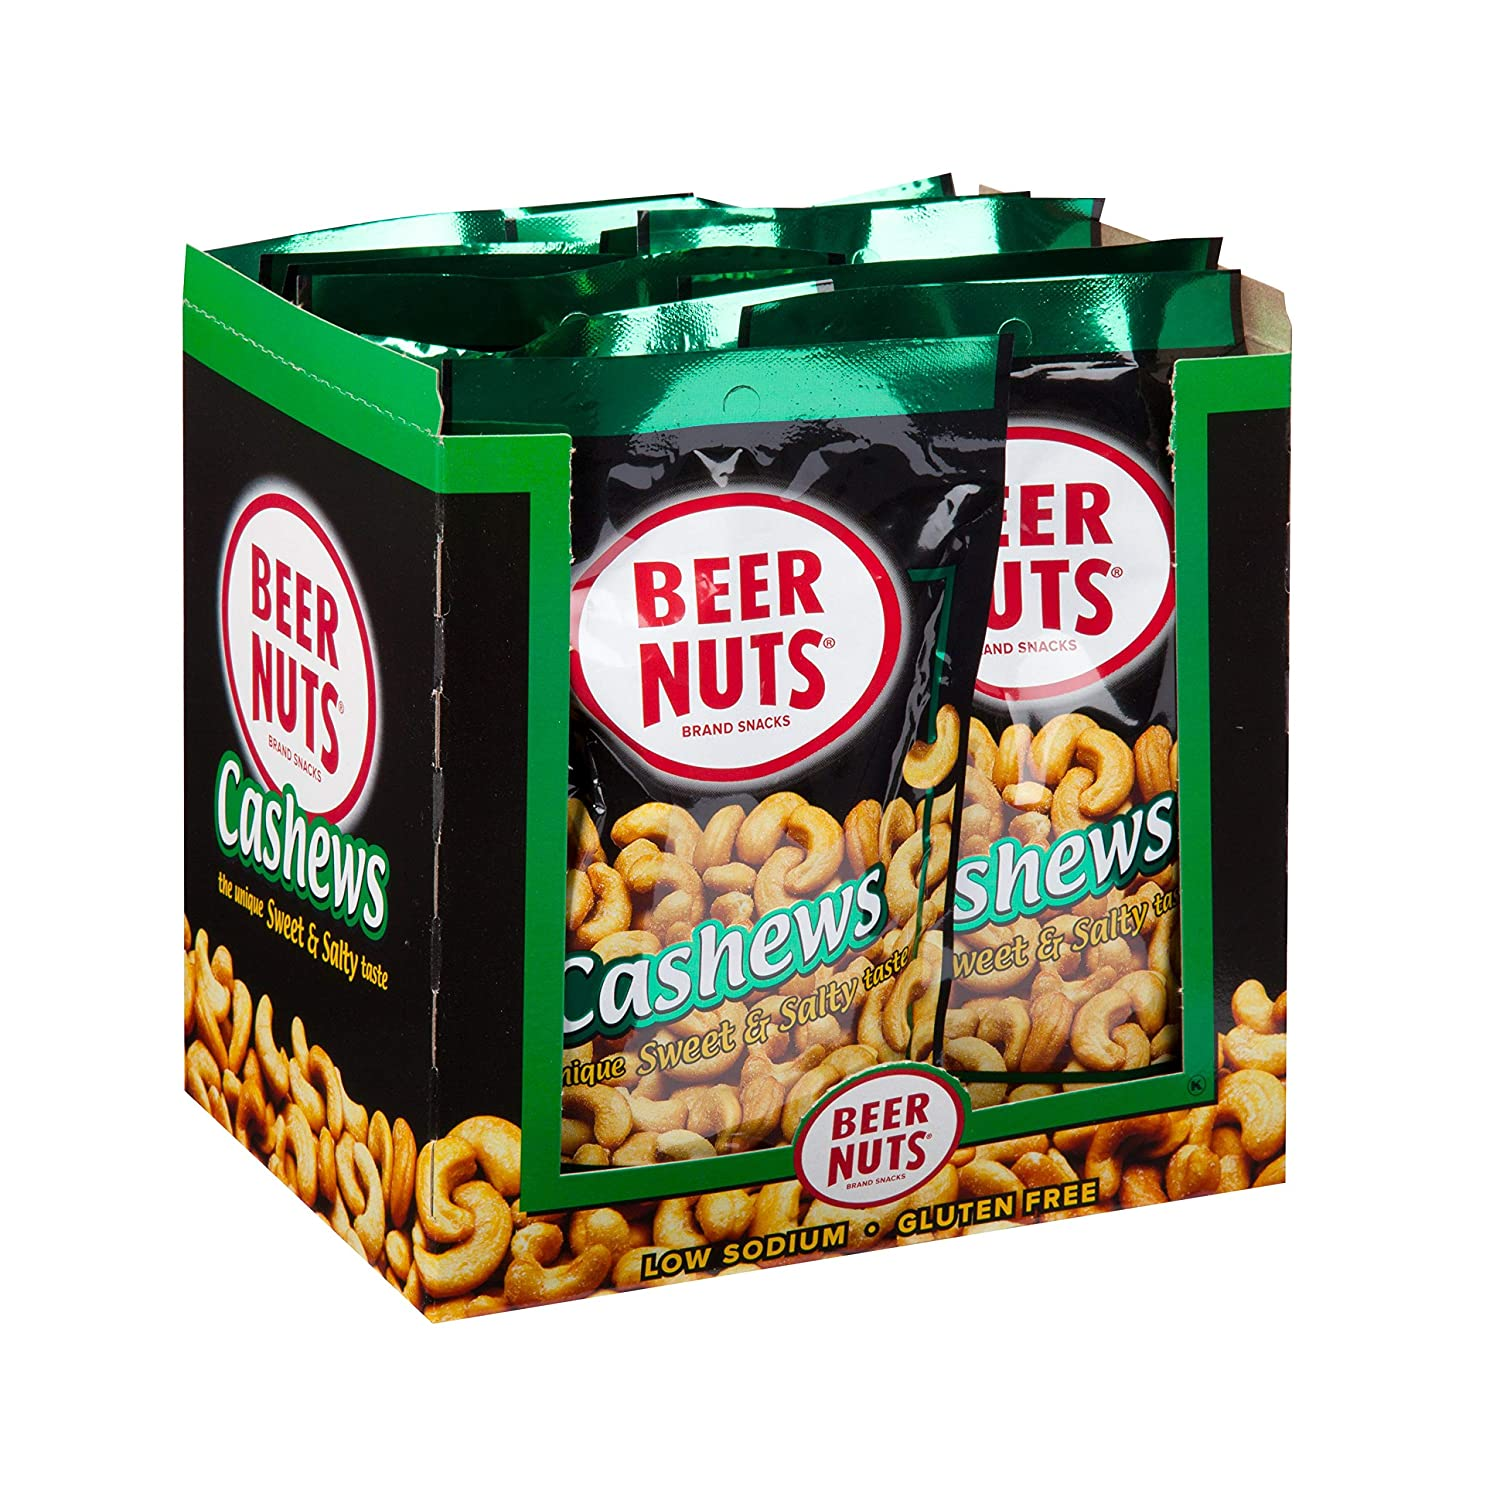 BEER NUTS Cashews - 12-Count 4oz Single Serve Bags, Low Sodium, Gluten Free Cashews